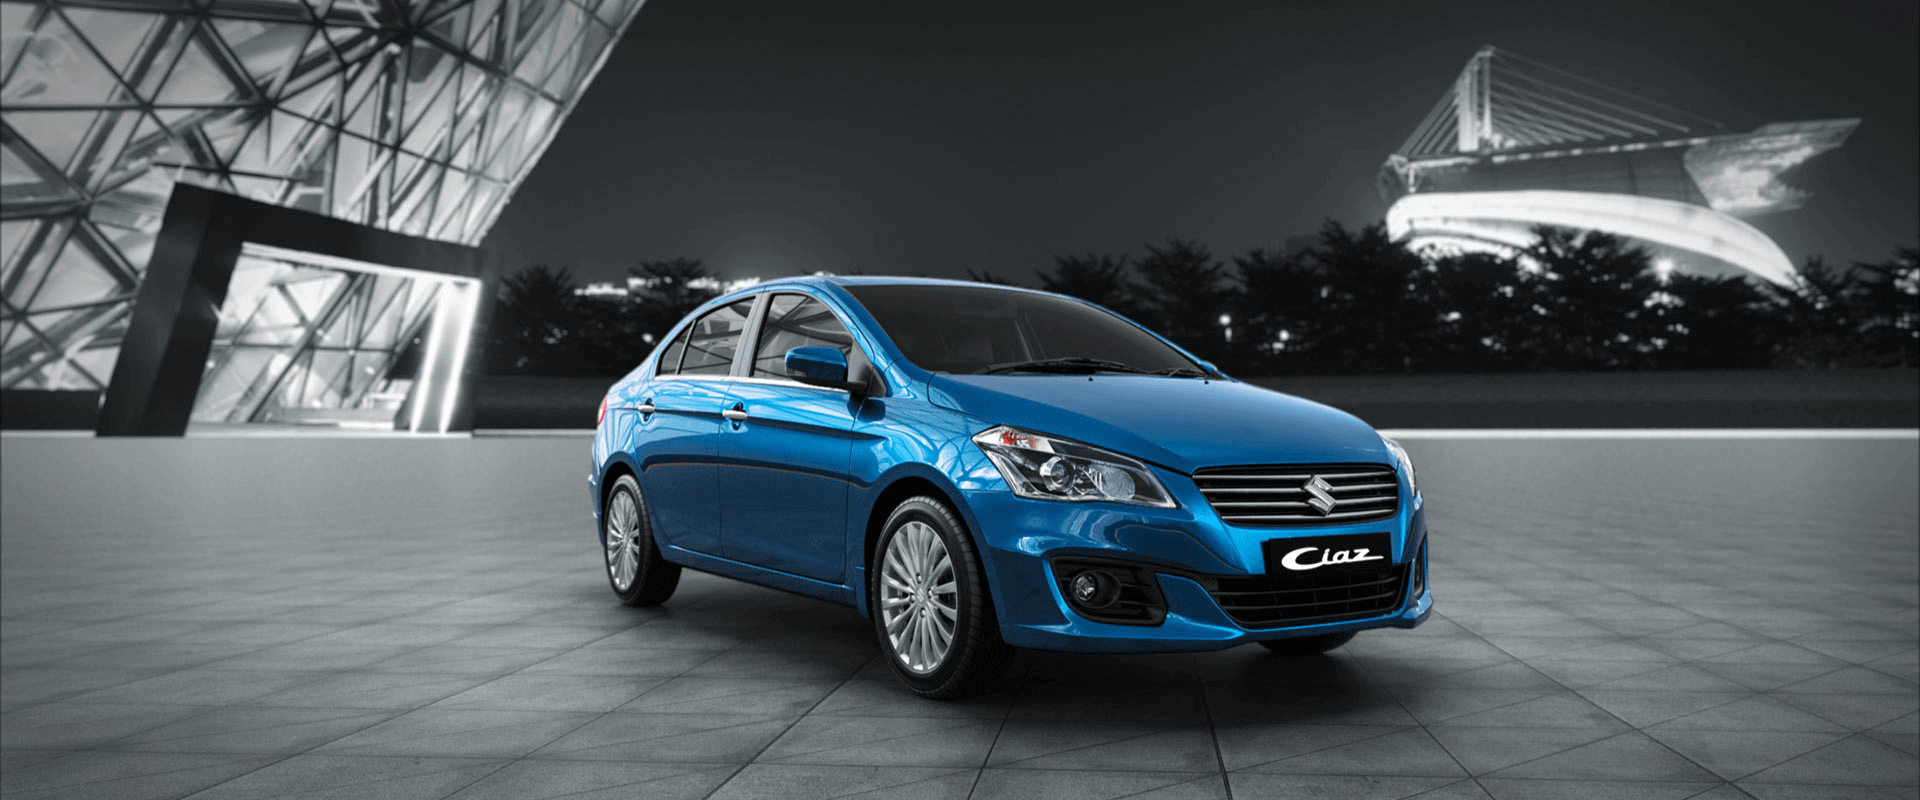 Ciaz Design Overview